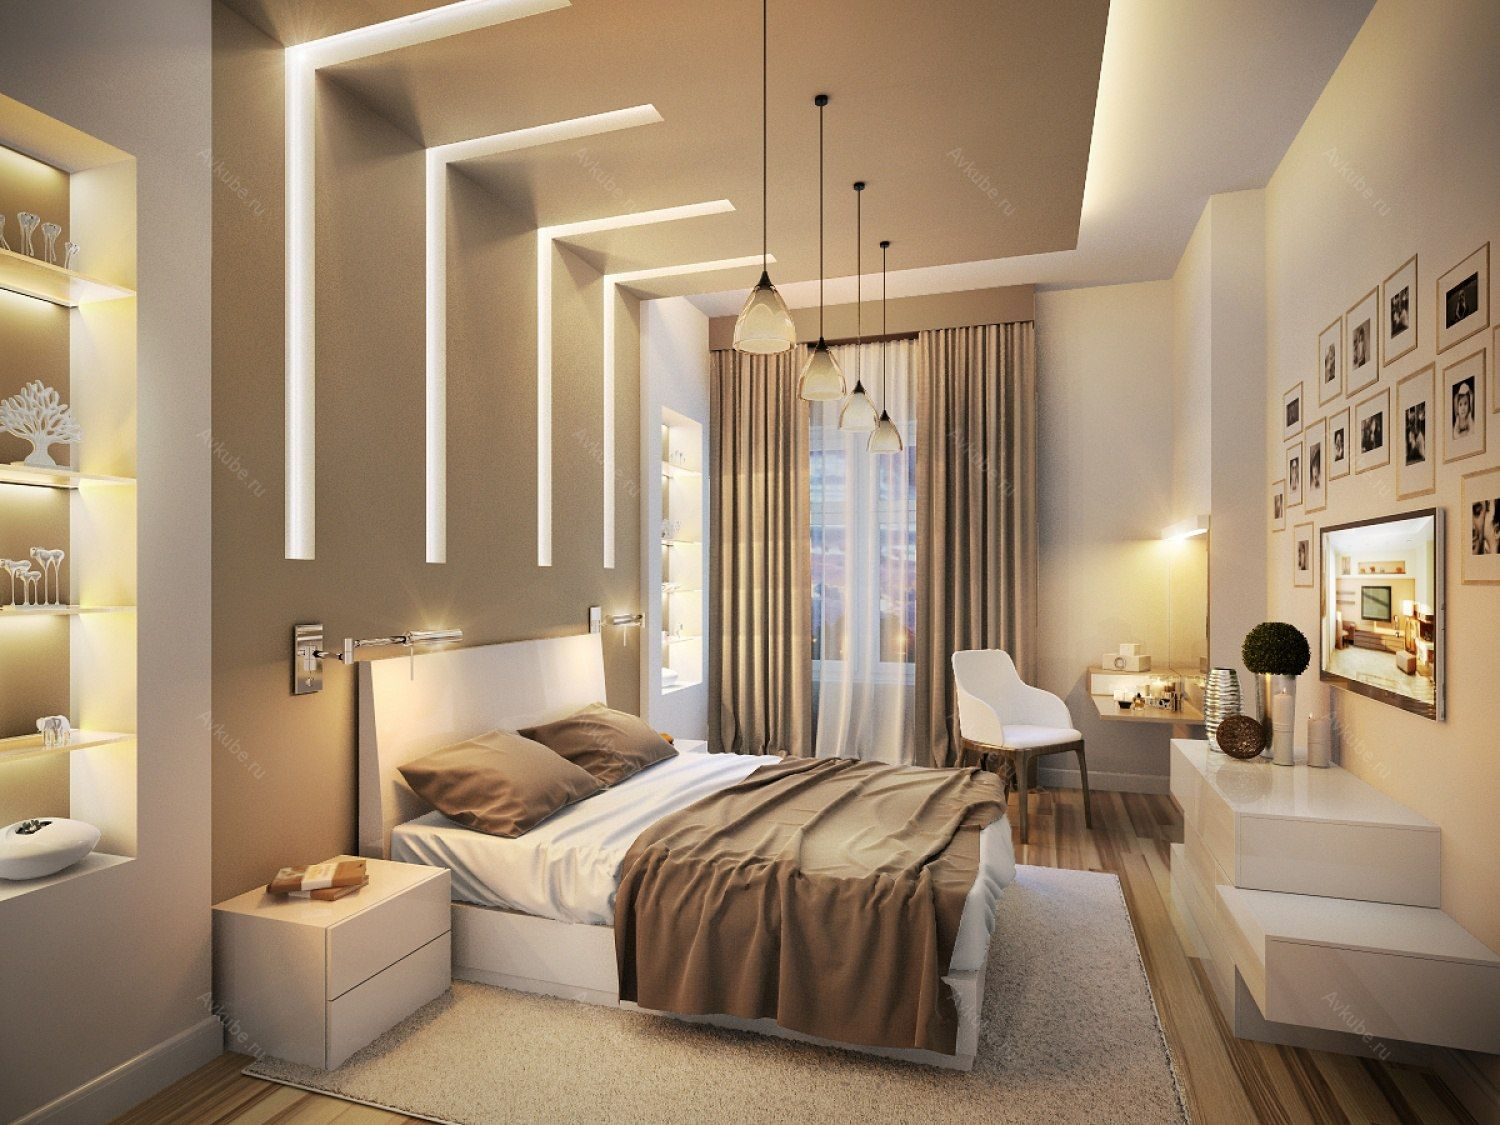 Pin by Natalie Thime on Bedroom   Bedroom false ceiling ...